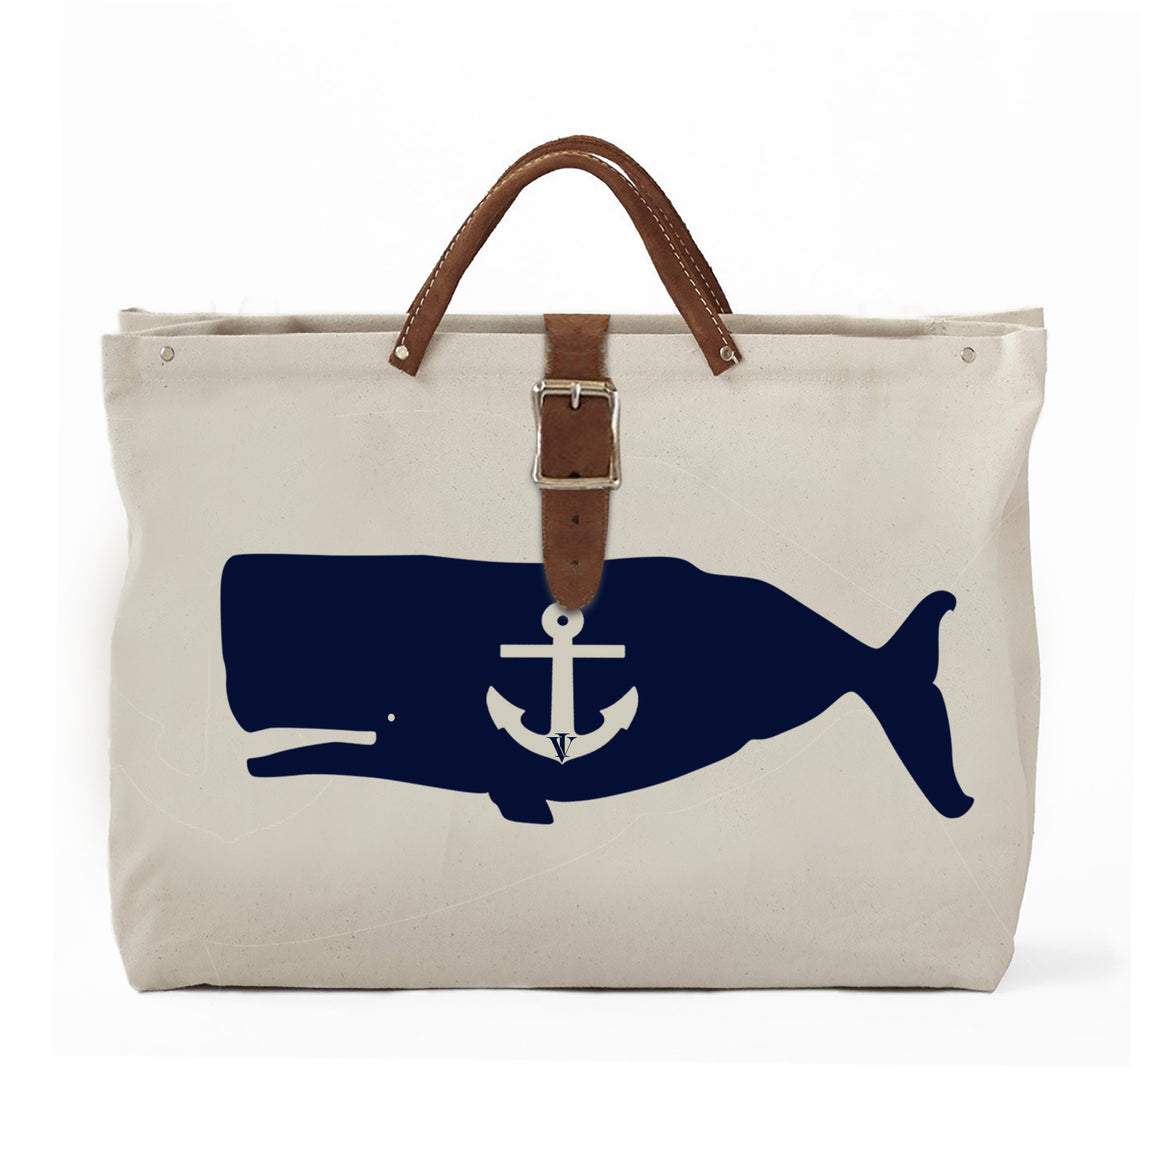 IVY WHALE CANVAS TOTE NATURAL/NAVY